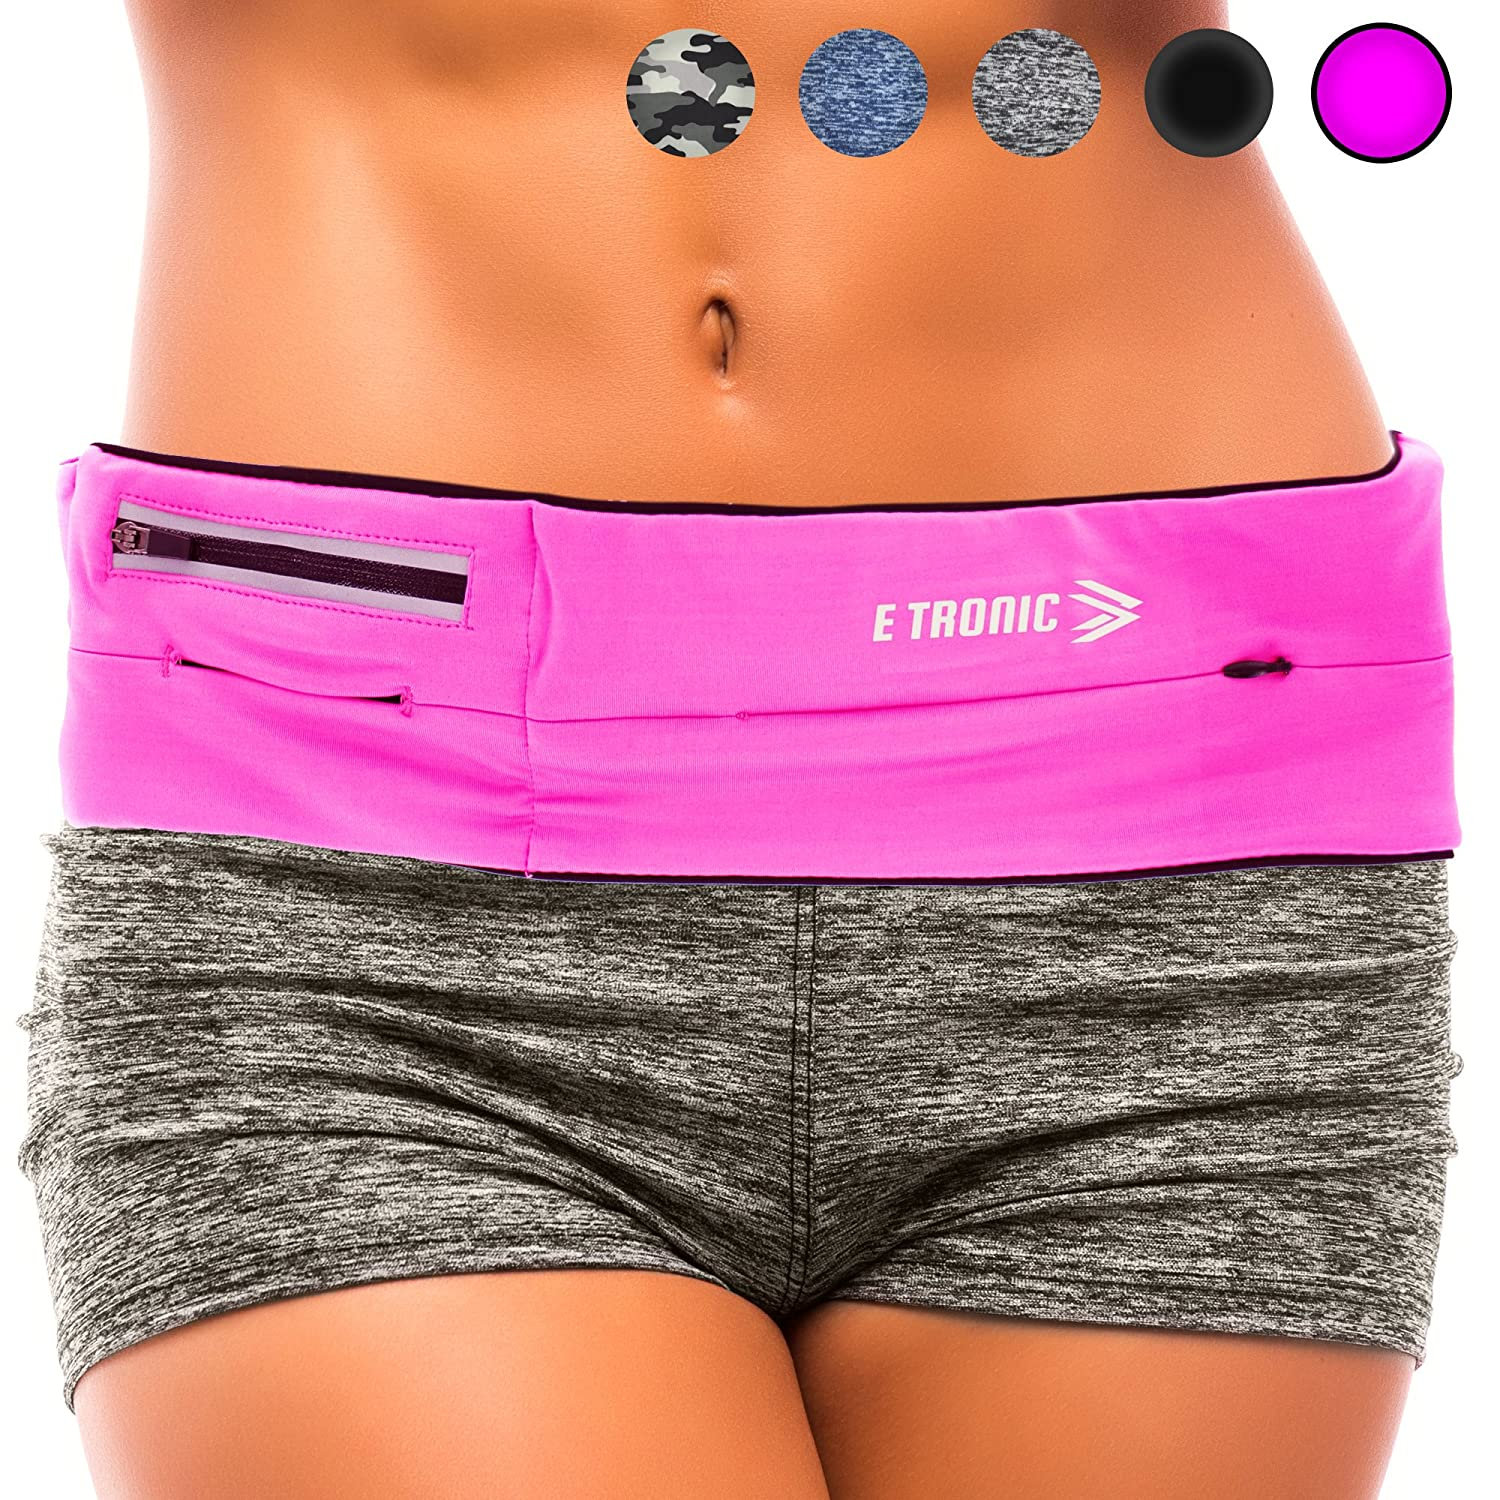 E Tronic Edge Running Belts Best Comfortable Running Belts That Fit All Phone Models and Fit All Waist Sizes. for Running Workouts Cycling Travelling Money Belt More. Comes in 5 Stylish Colors